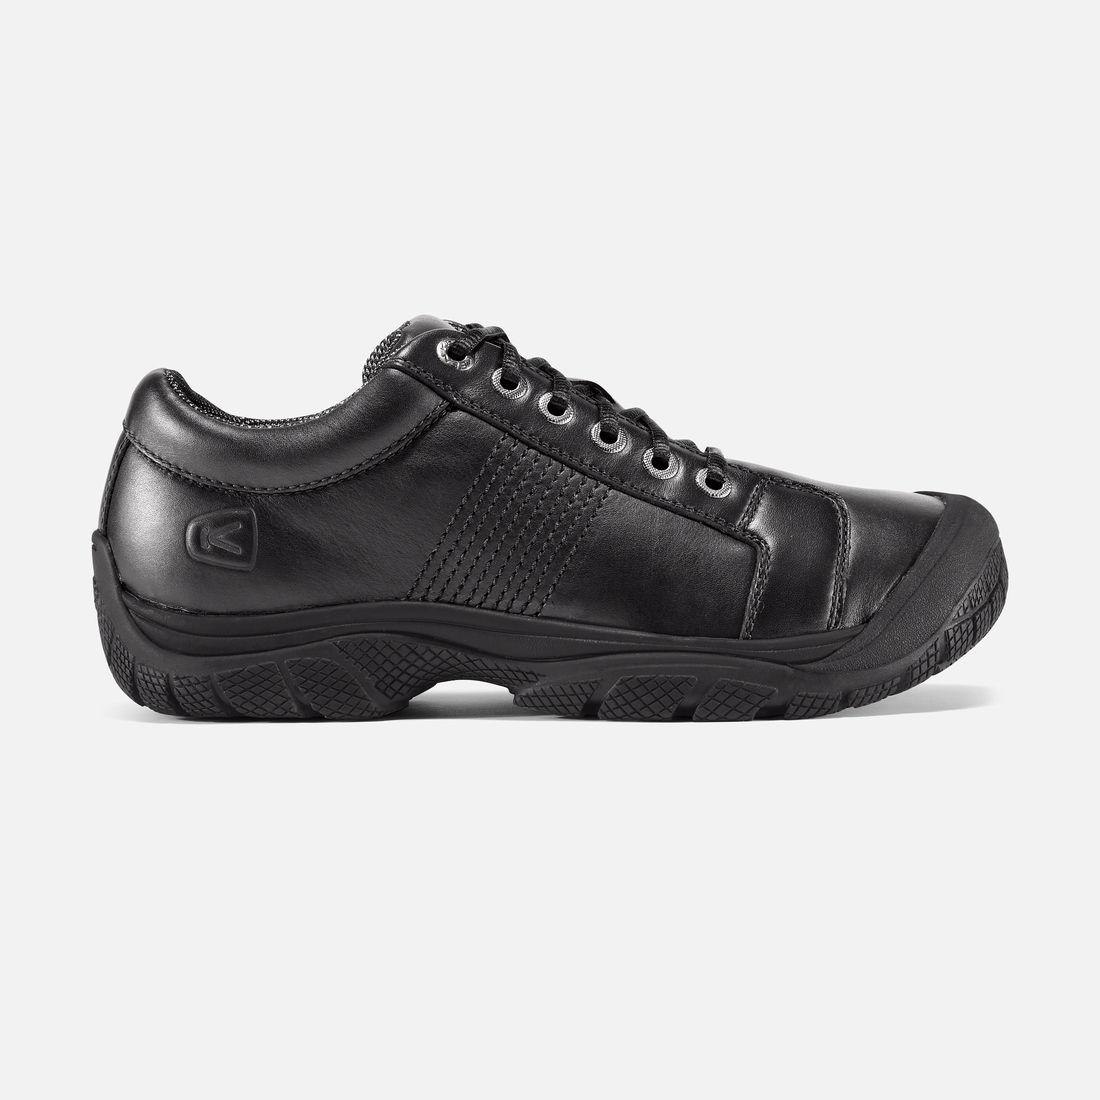 ptc oxford slip resistant work shoe black rudolph